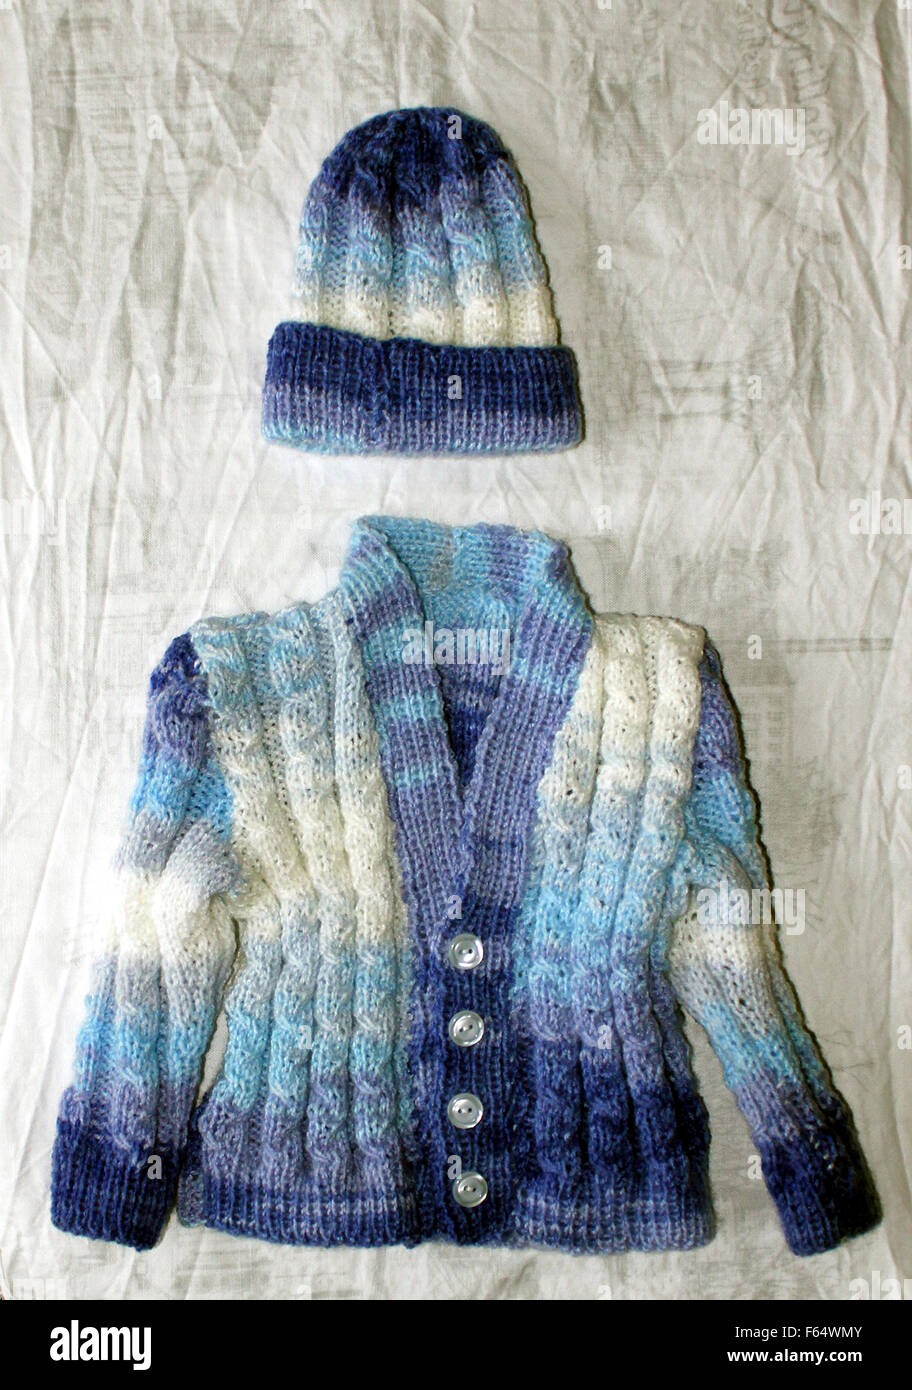 Hand knitted by Carole a babies cardigan and hat set, created from acrylic yarn in blue and white shades. - Stock Image